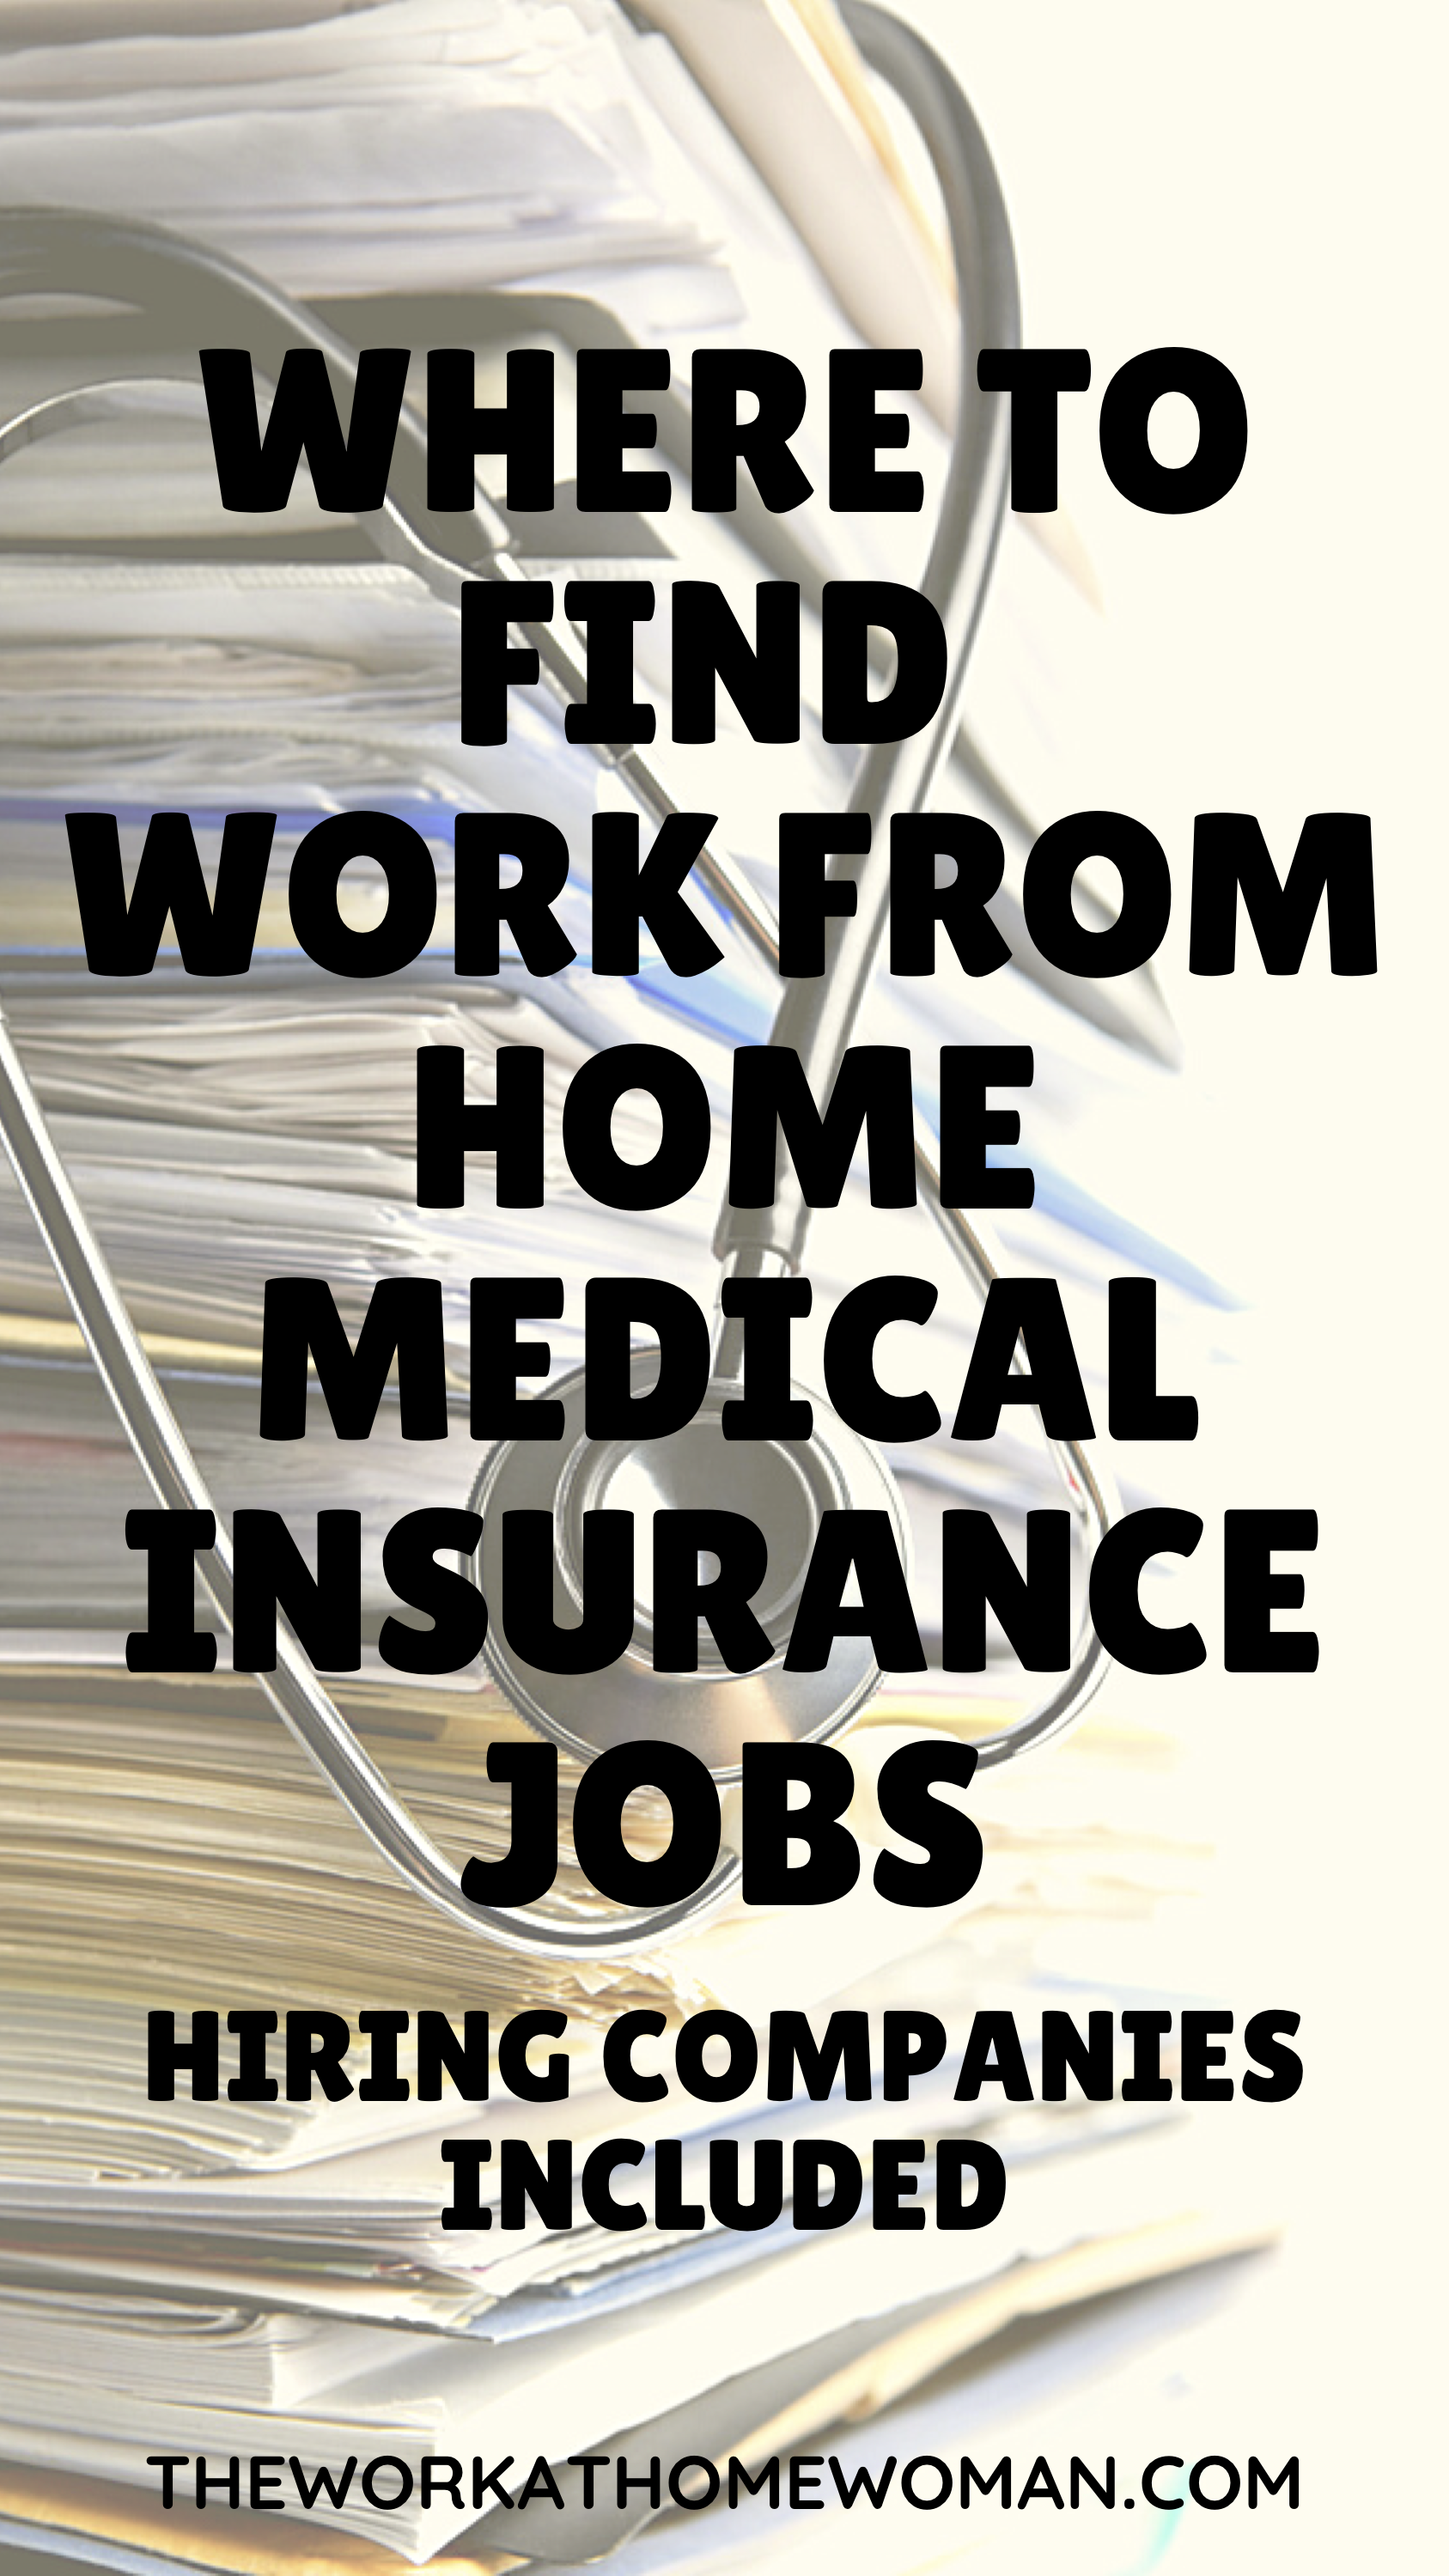 Where To Find Work From Home Medical Insurance Jobs In 2020 Working From Home Legit Work From Home Job